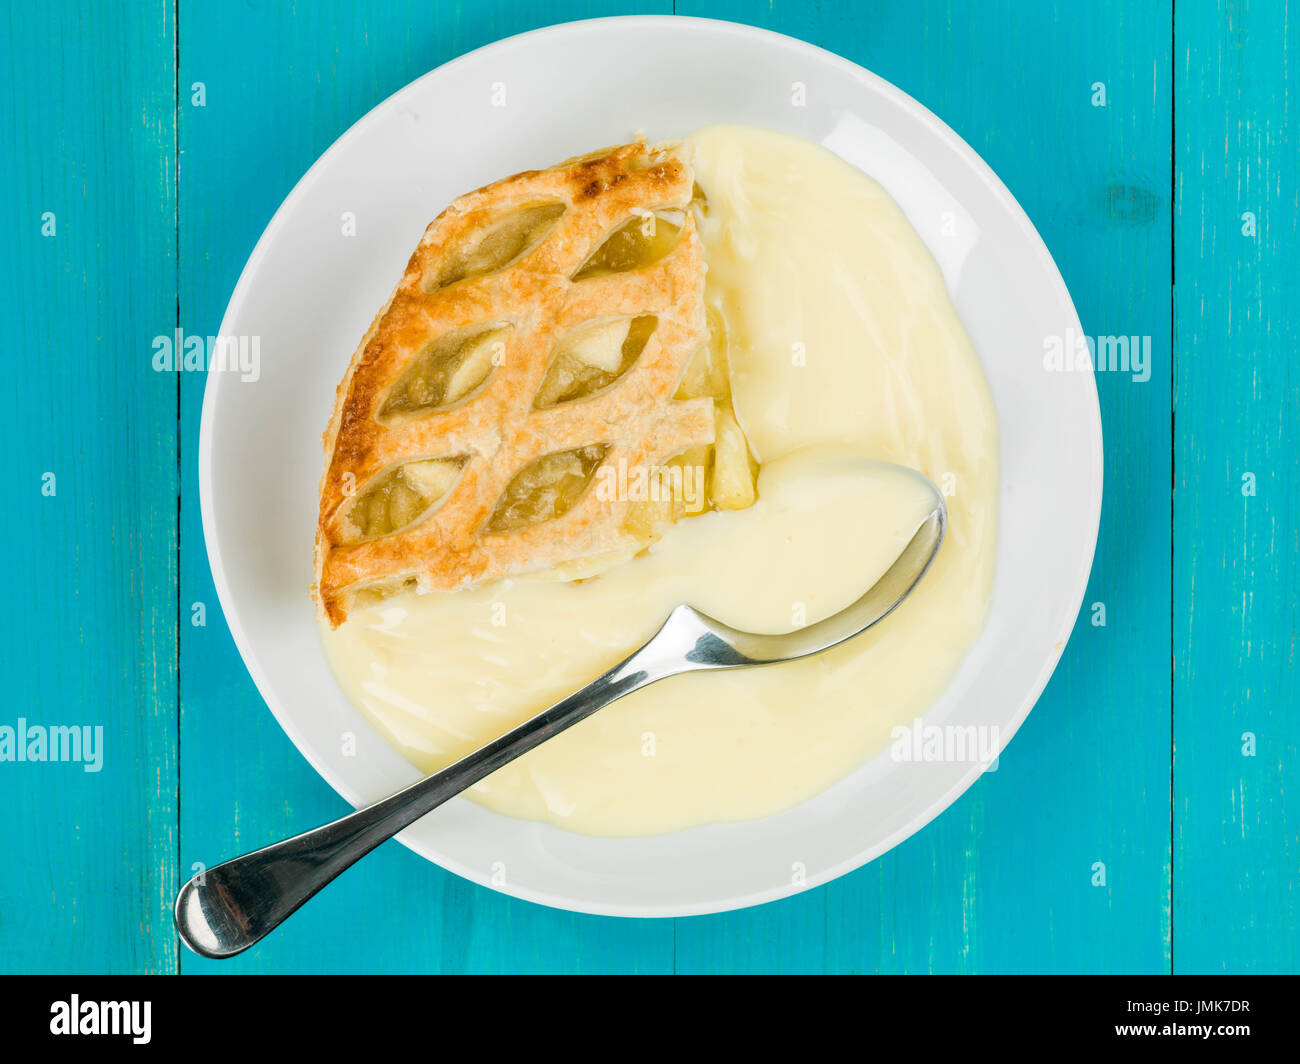 Apple Pie And Custard Dessert Against a Blue Wooden Background - Stock Image